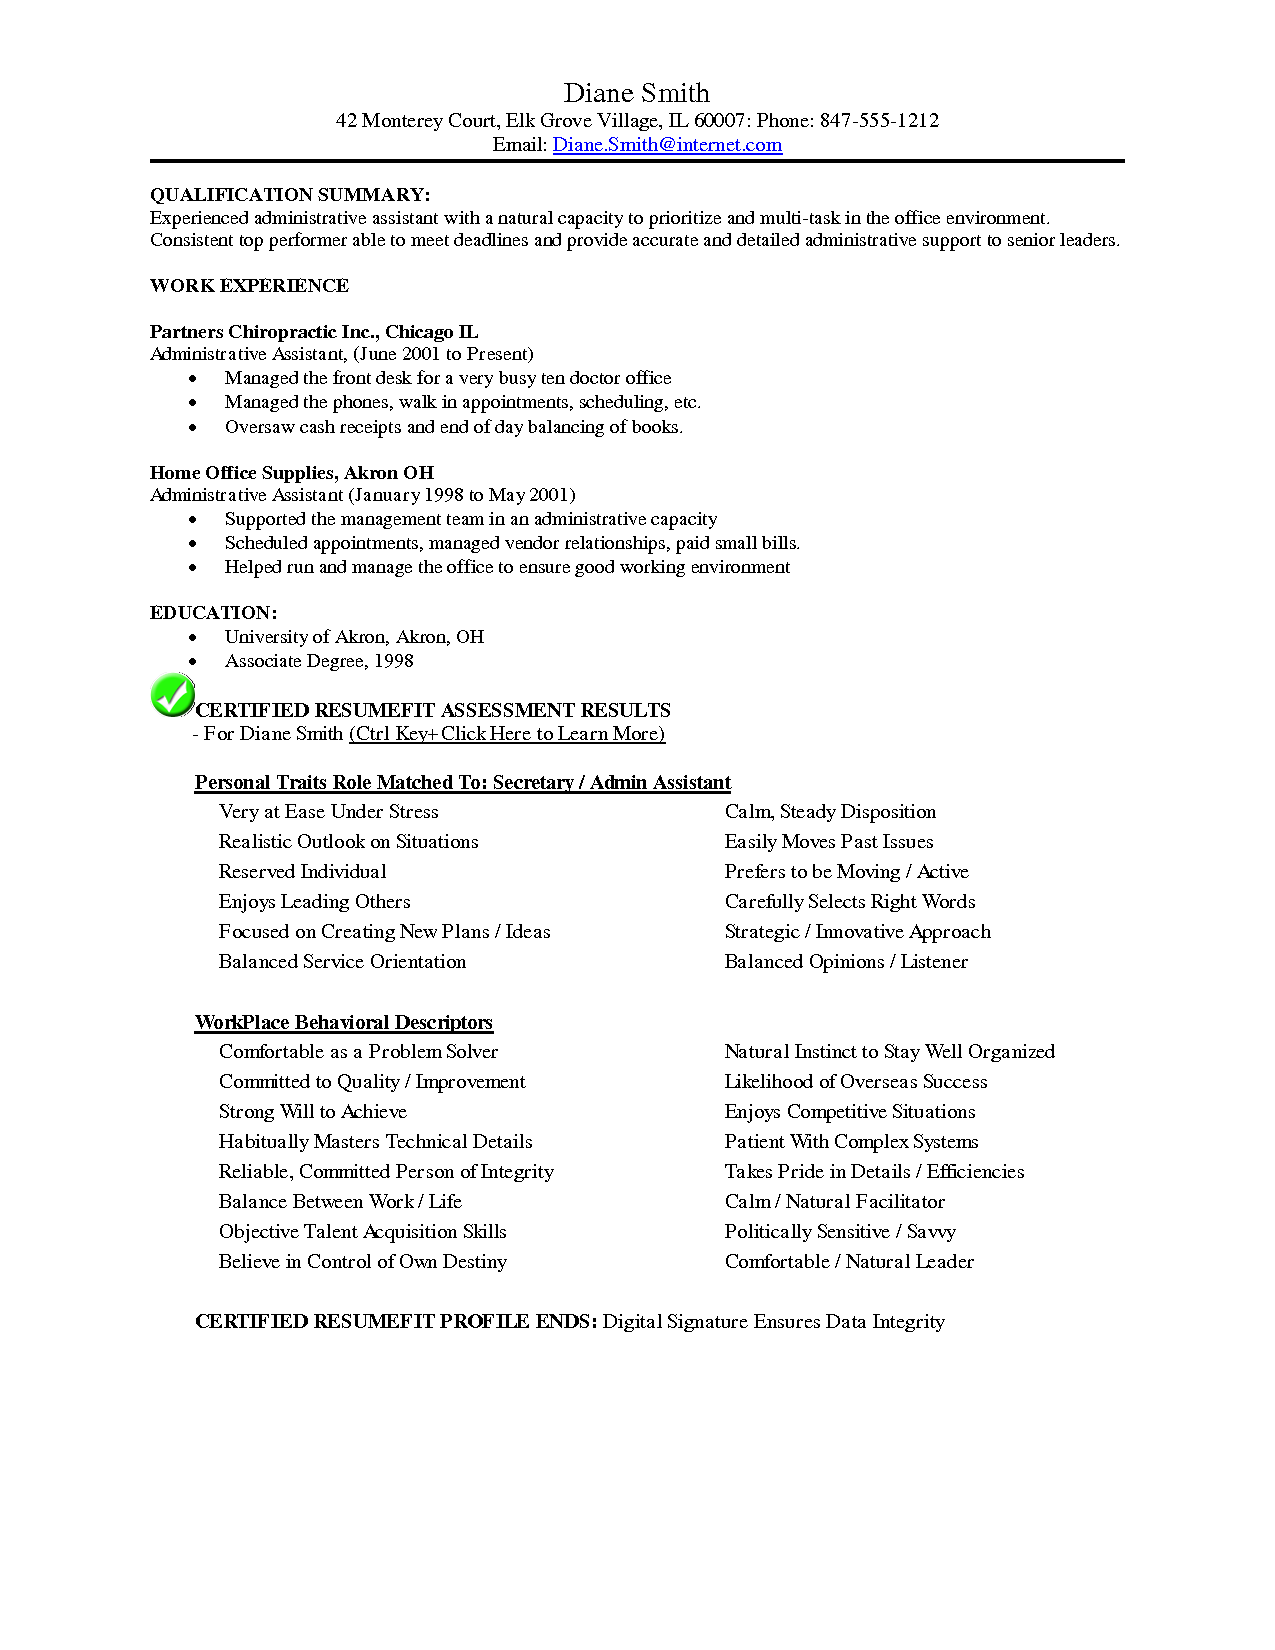 Chiropractic Resume Example Administrative Assistant Resume Resume Examples Office Assistant Resume